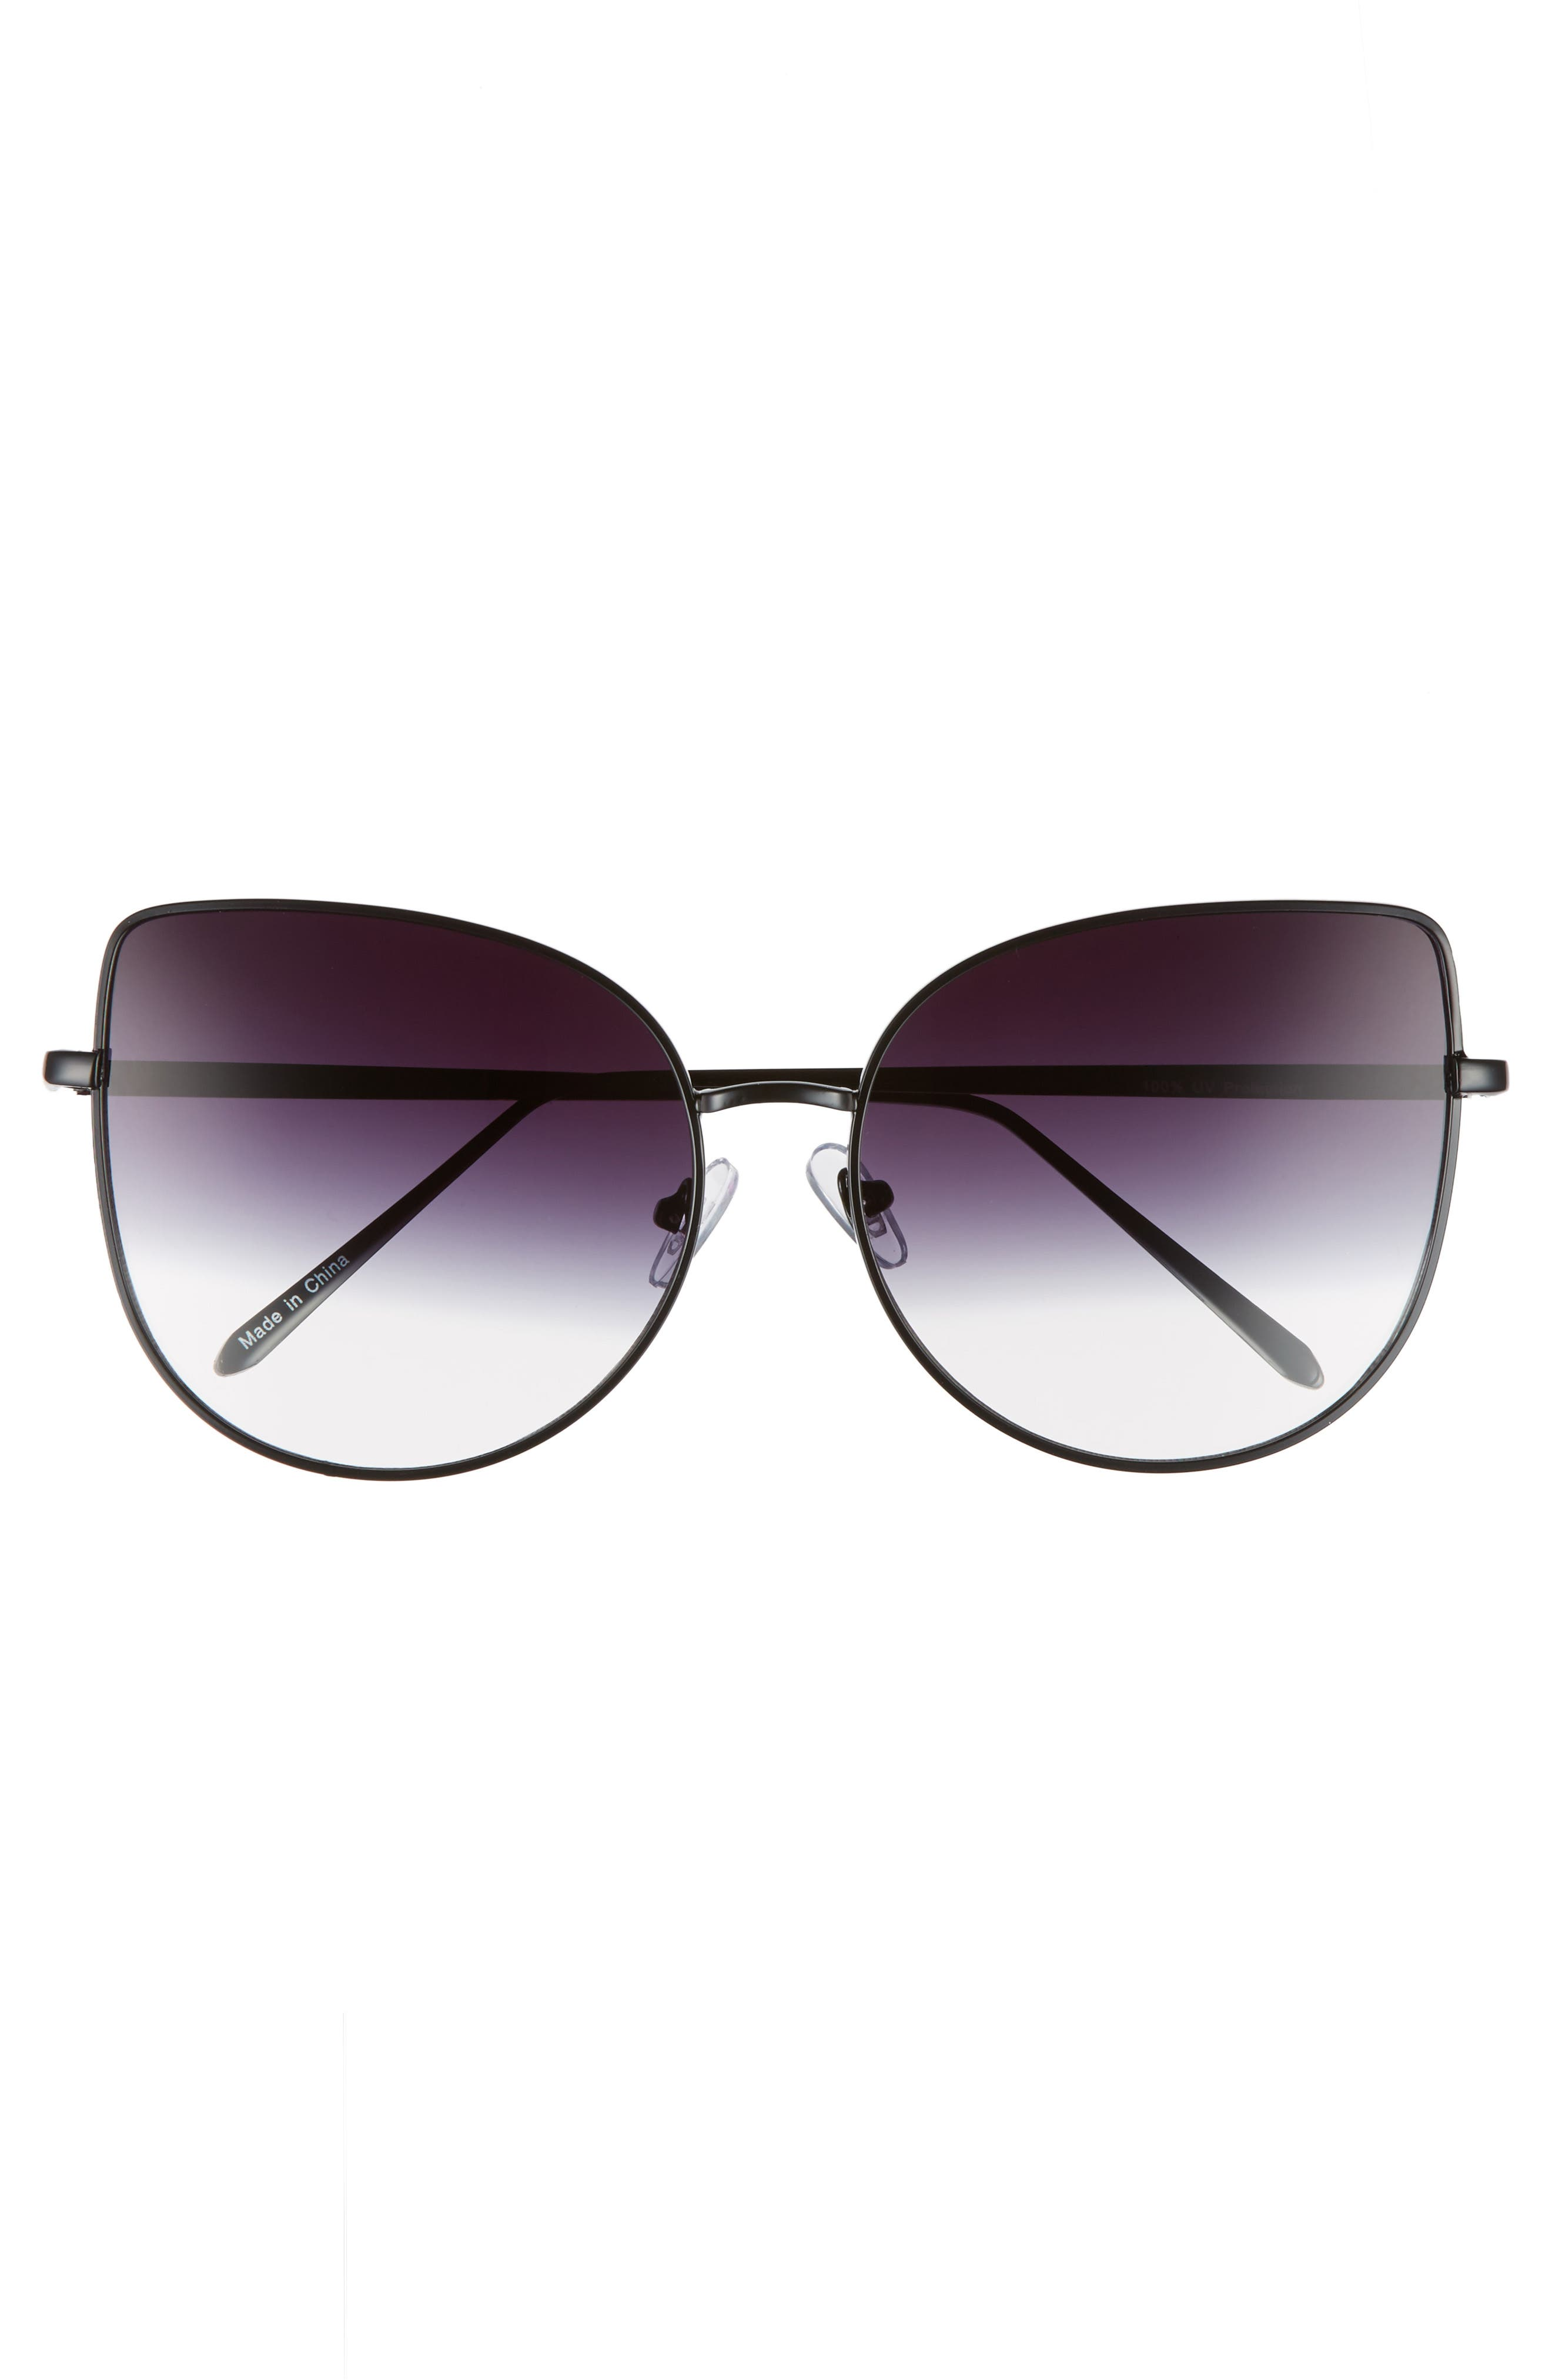 60mm Metal Cat Eye Sunglasses,                             Alternate thumbnail 3, color,                             Black/ Fade To Clear